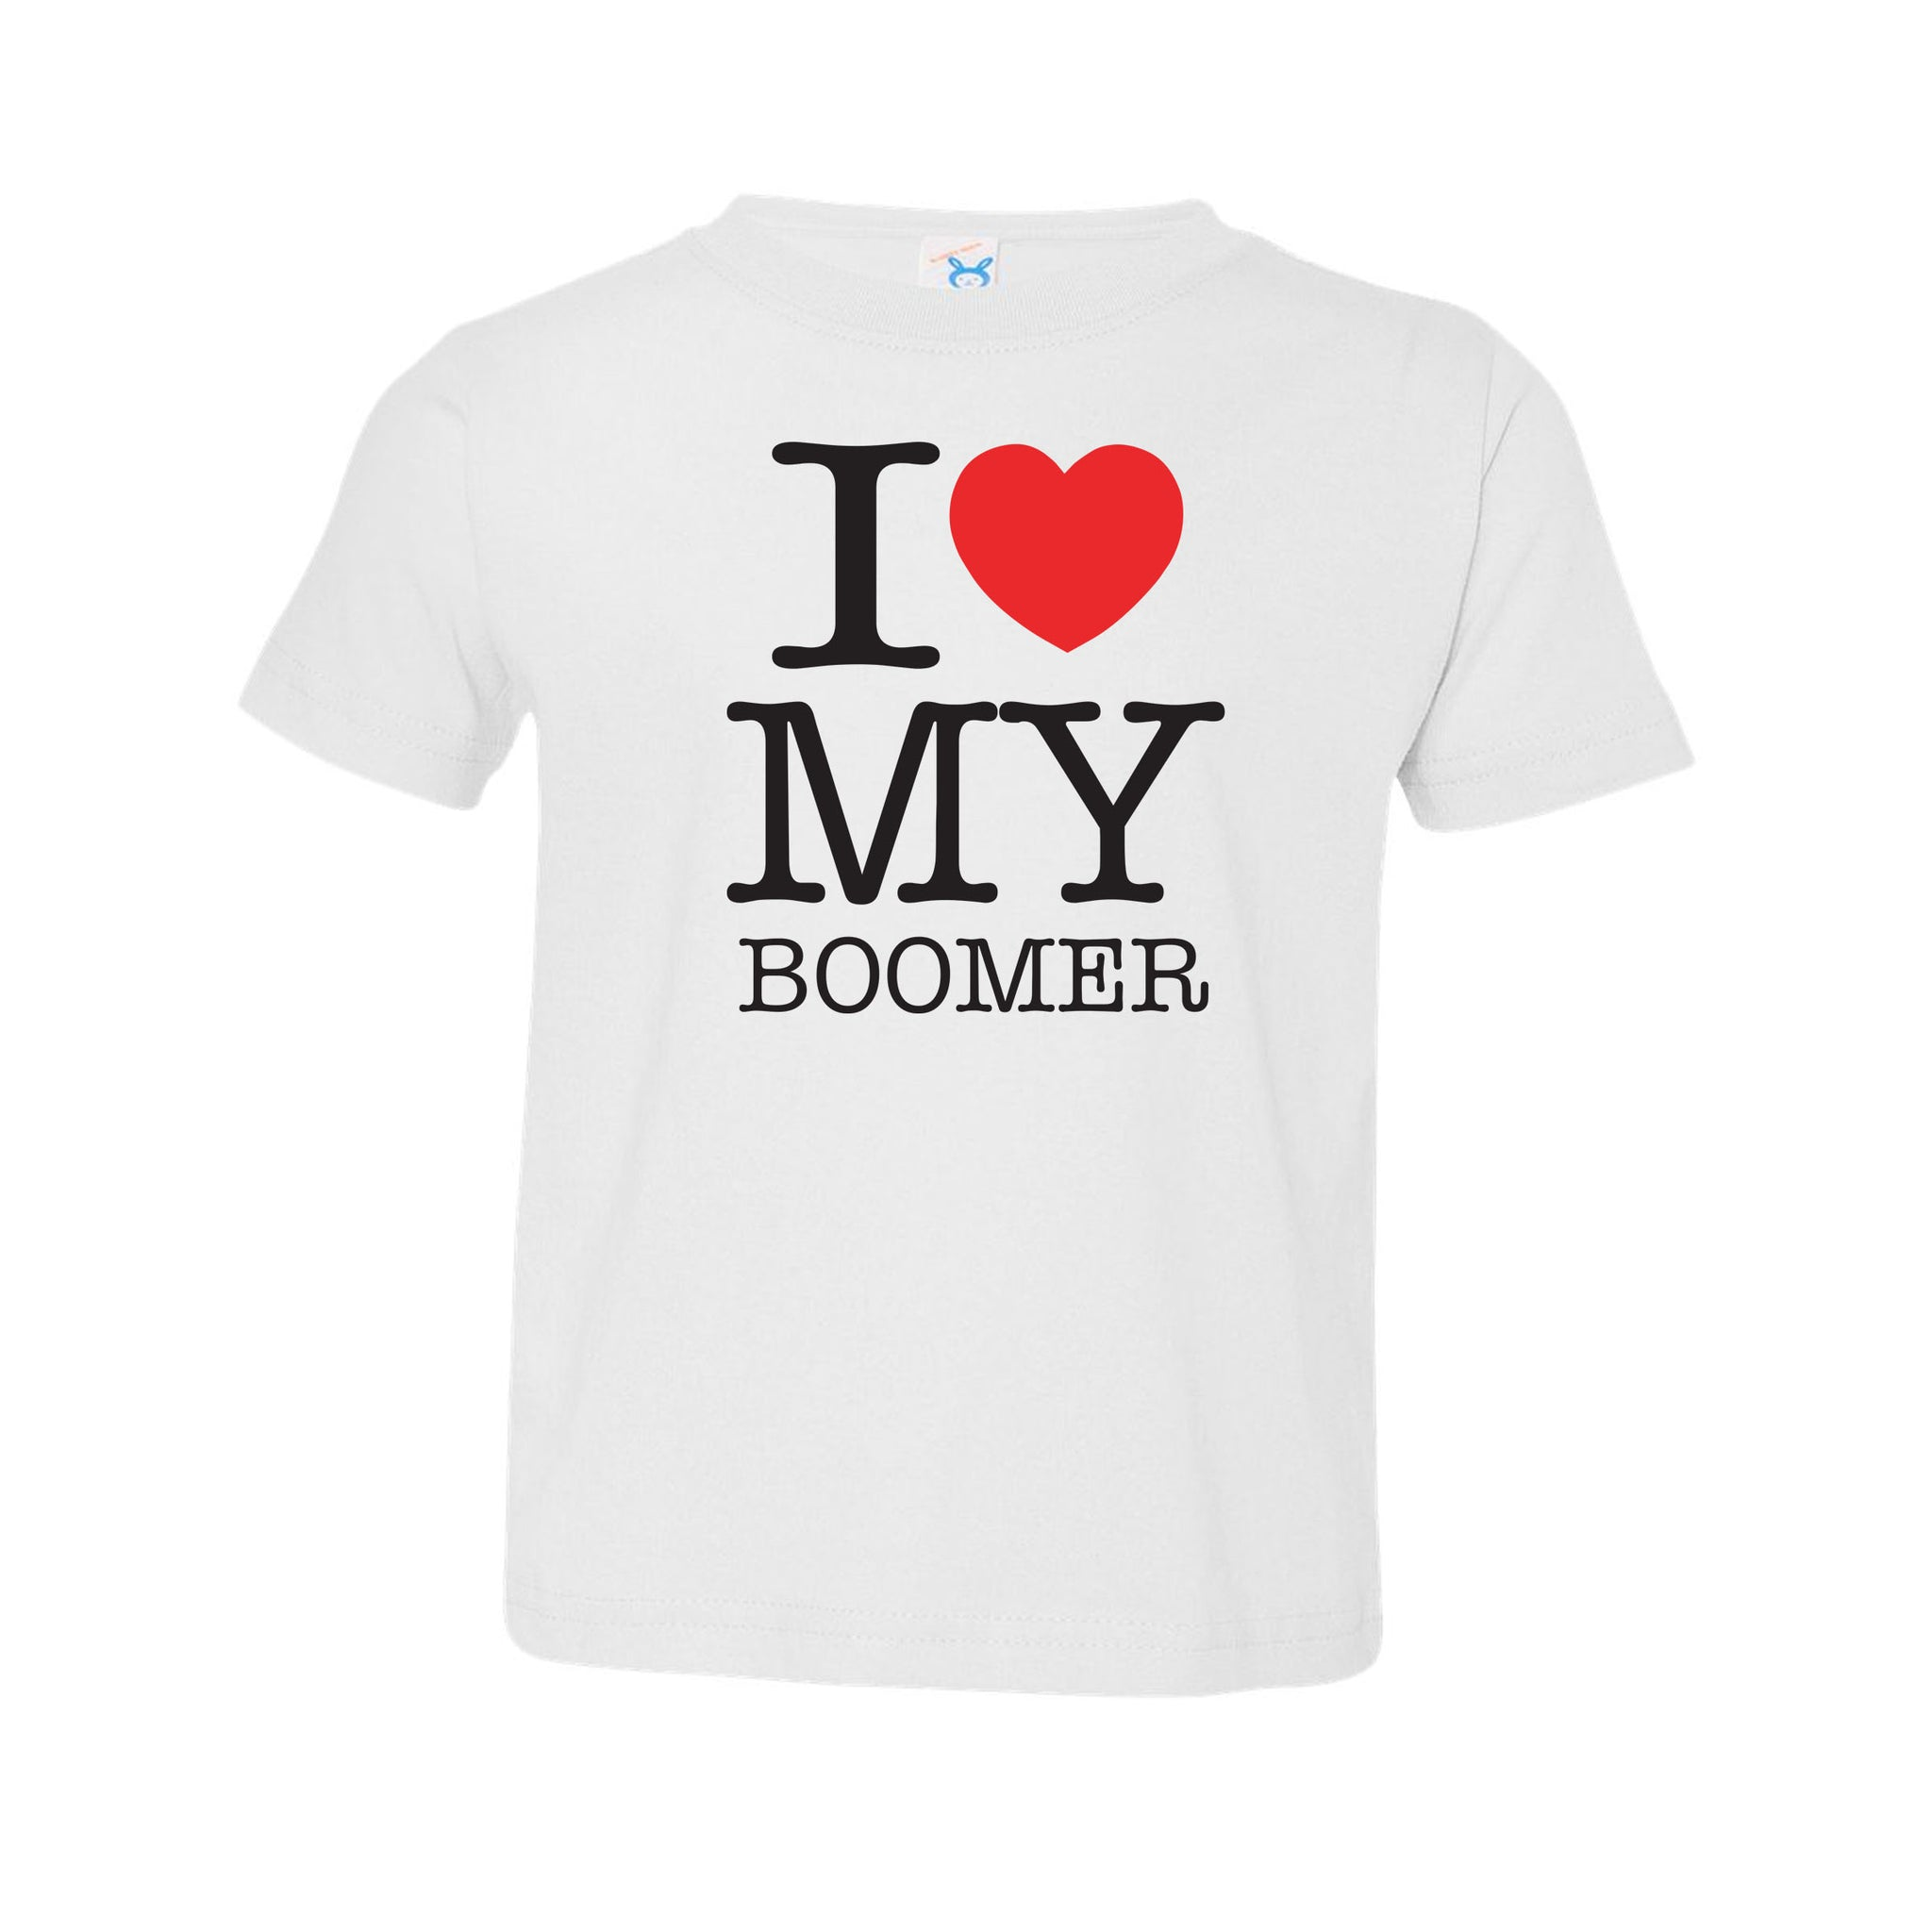 I heart my boomer- Toddler Tee